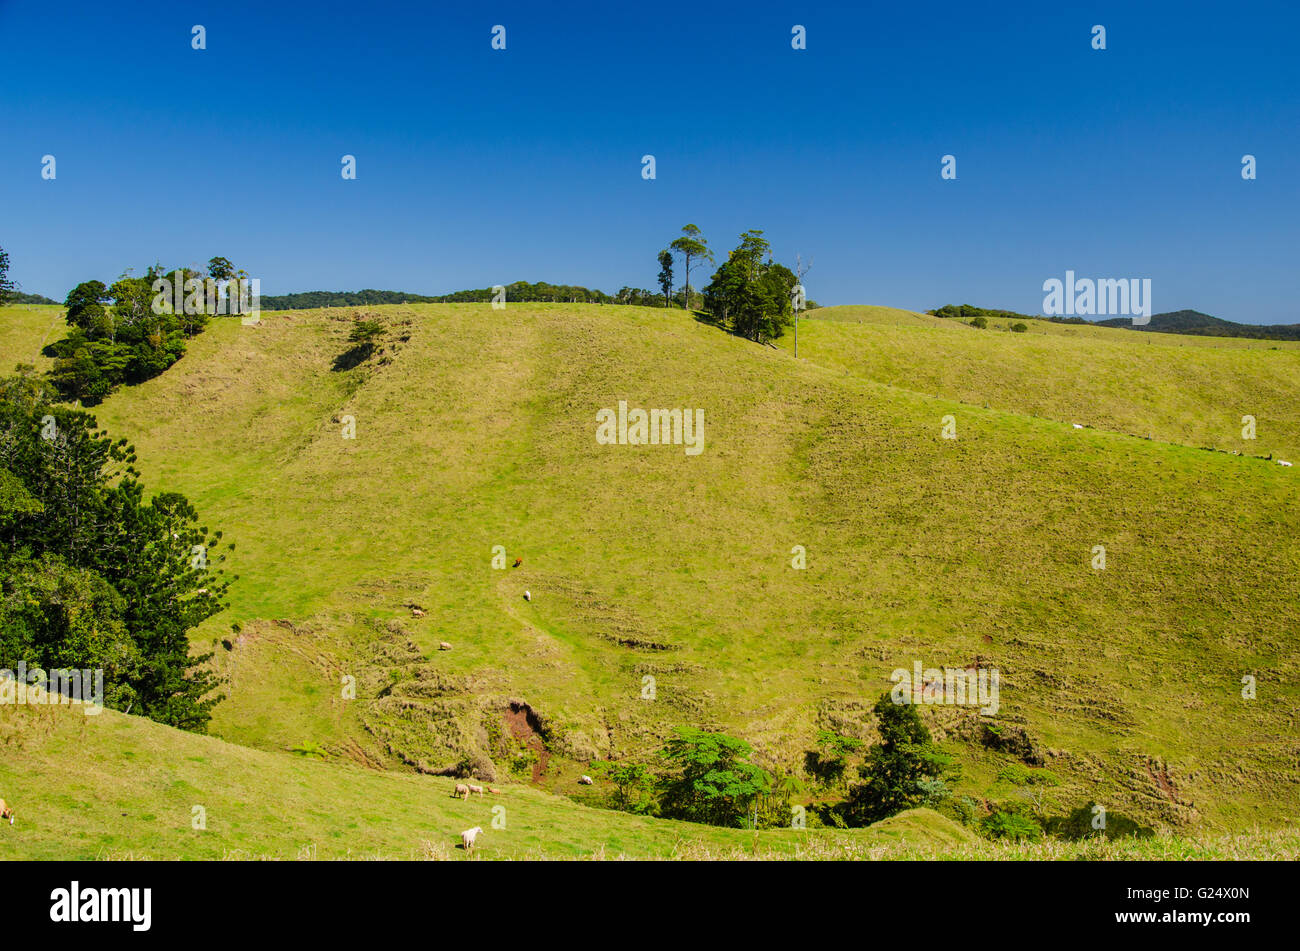 Meadowland in the Atherton Tableland. - Stock Image